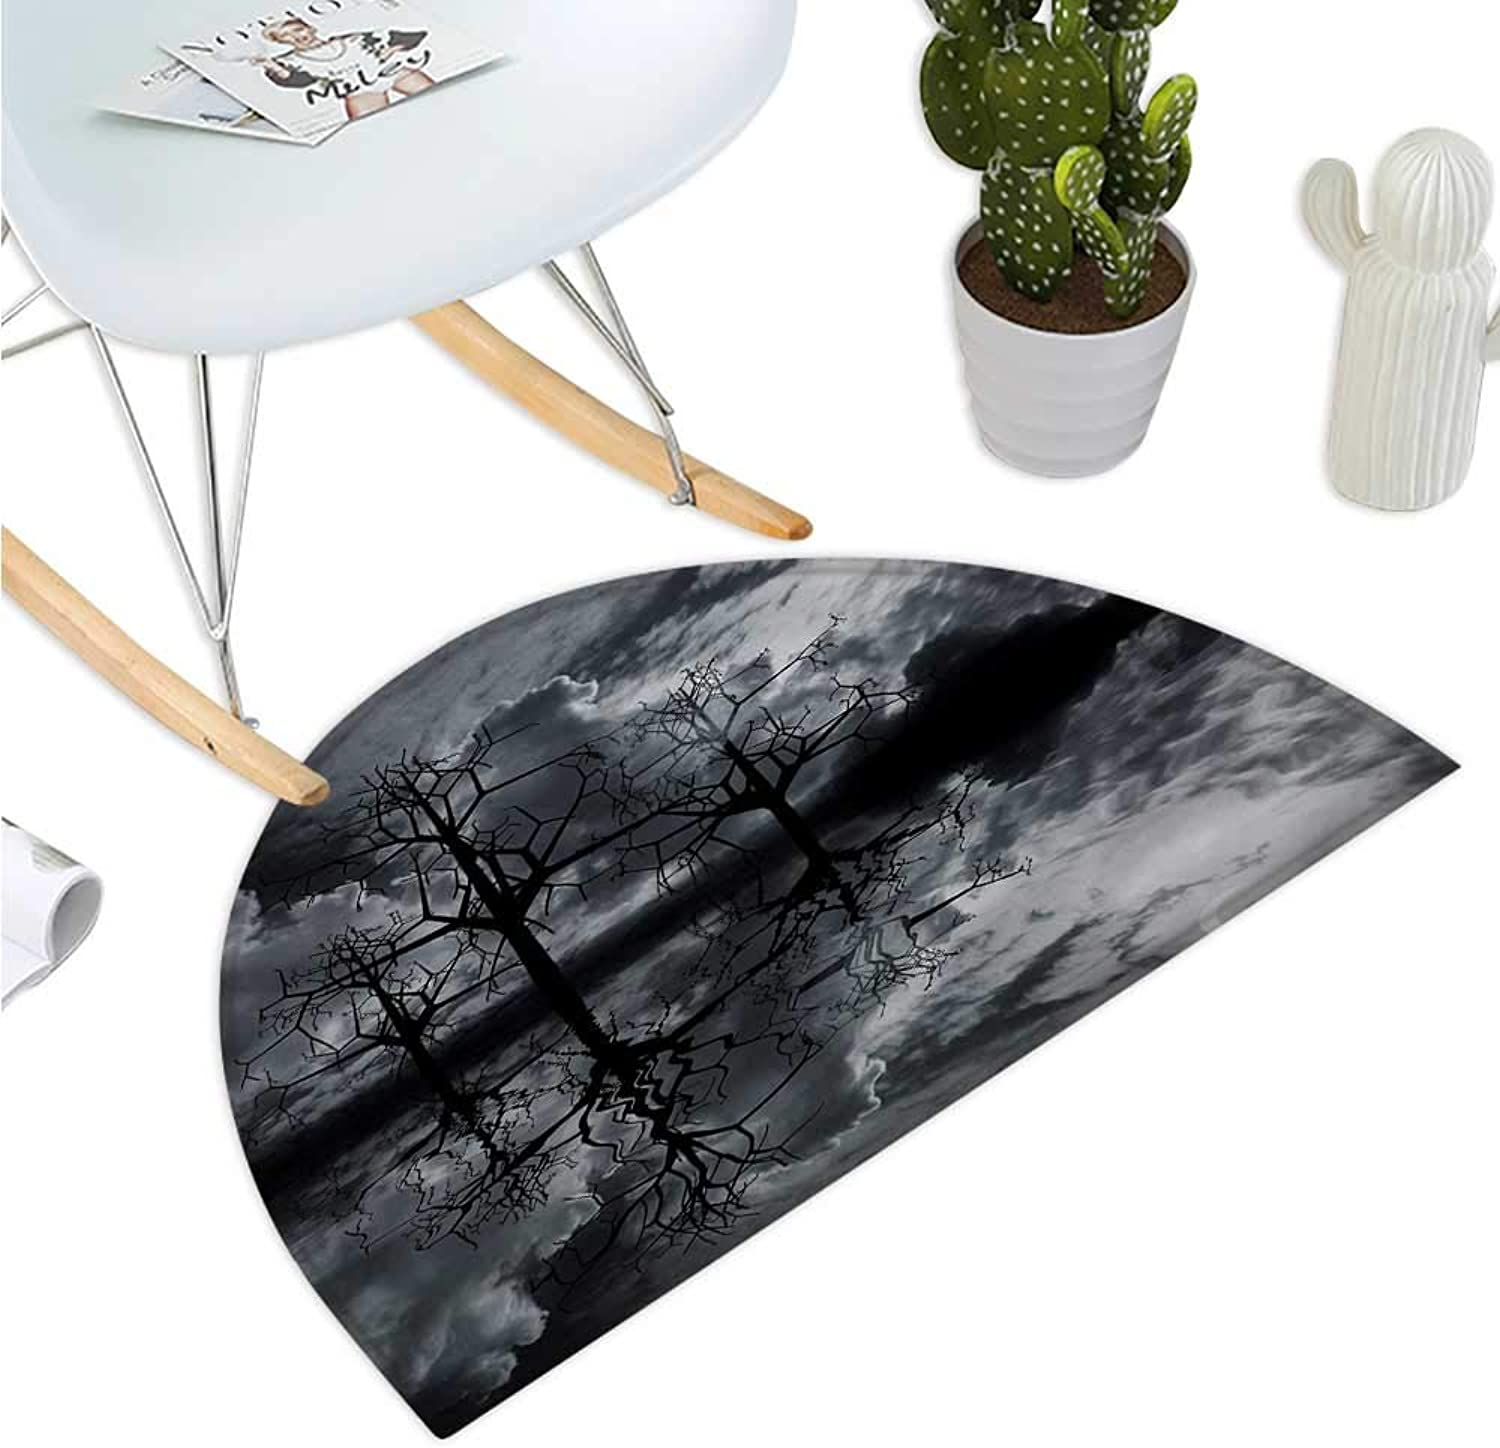 Landscape Semicircular Cushion 3D Graphic Fantasy Land at Night Cloudy Sky Moon Trees Water Reflection Bathroom Mat H 35.4  xD 53.1  Black White Grey